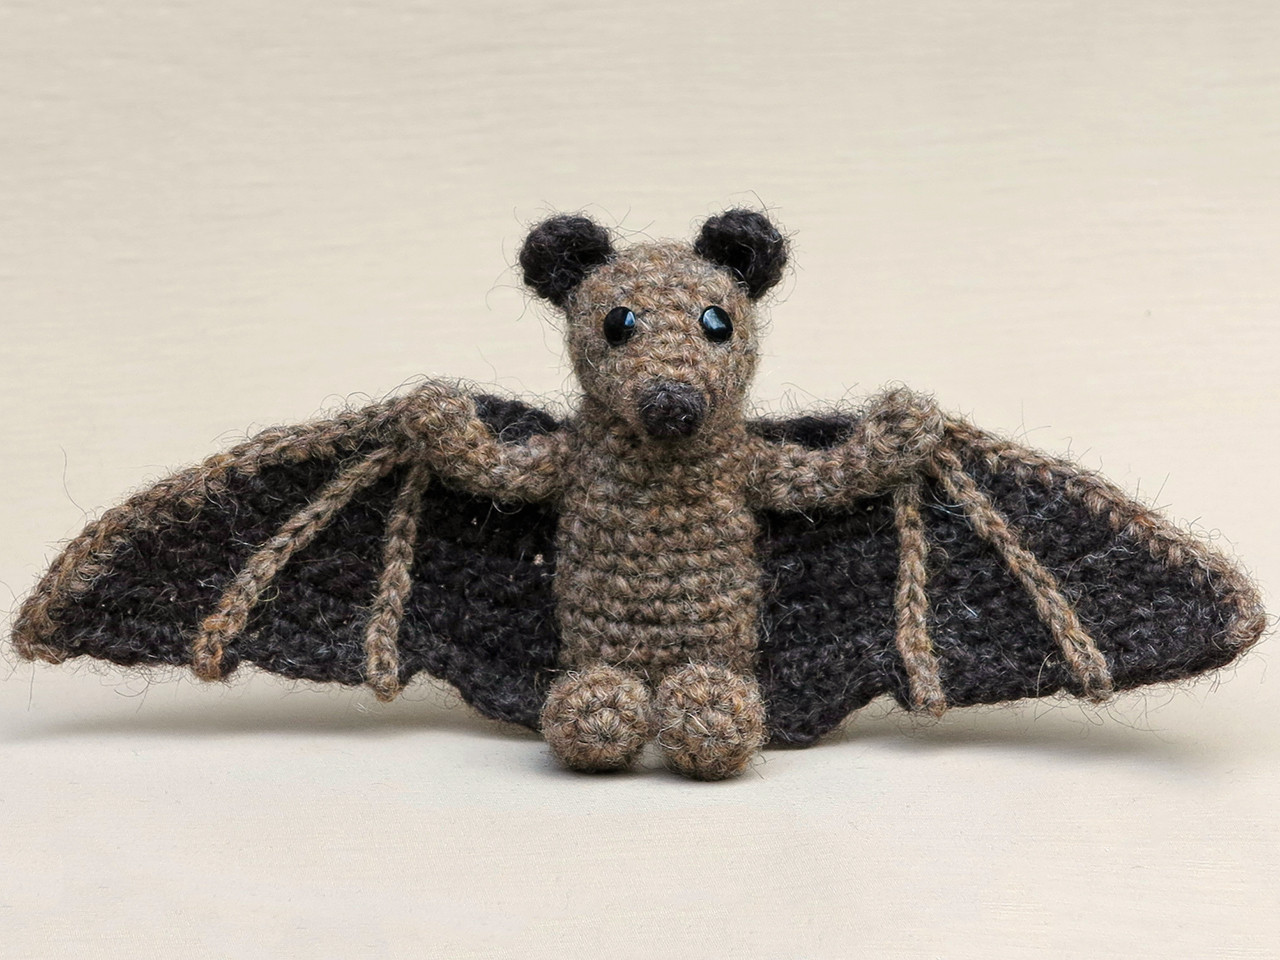 Free Crochet Bat Pattern Inspirational Brutus Crochet Bat Pattern Of Gorgeous 42 Pics Free Crochet Bat Pattern